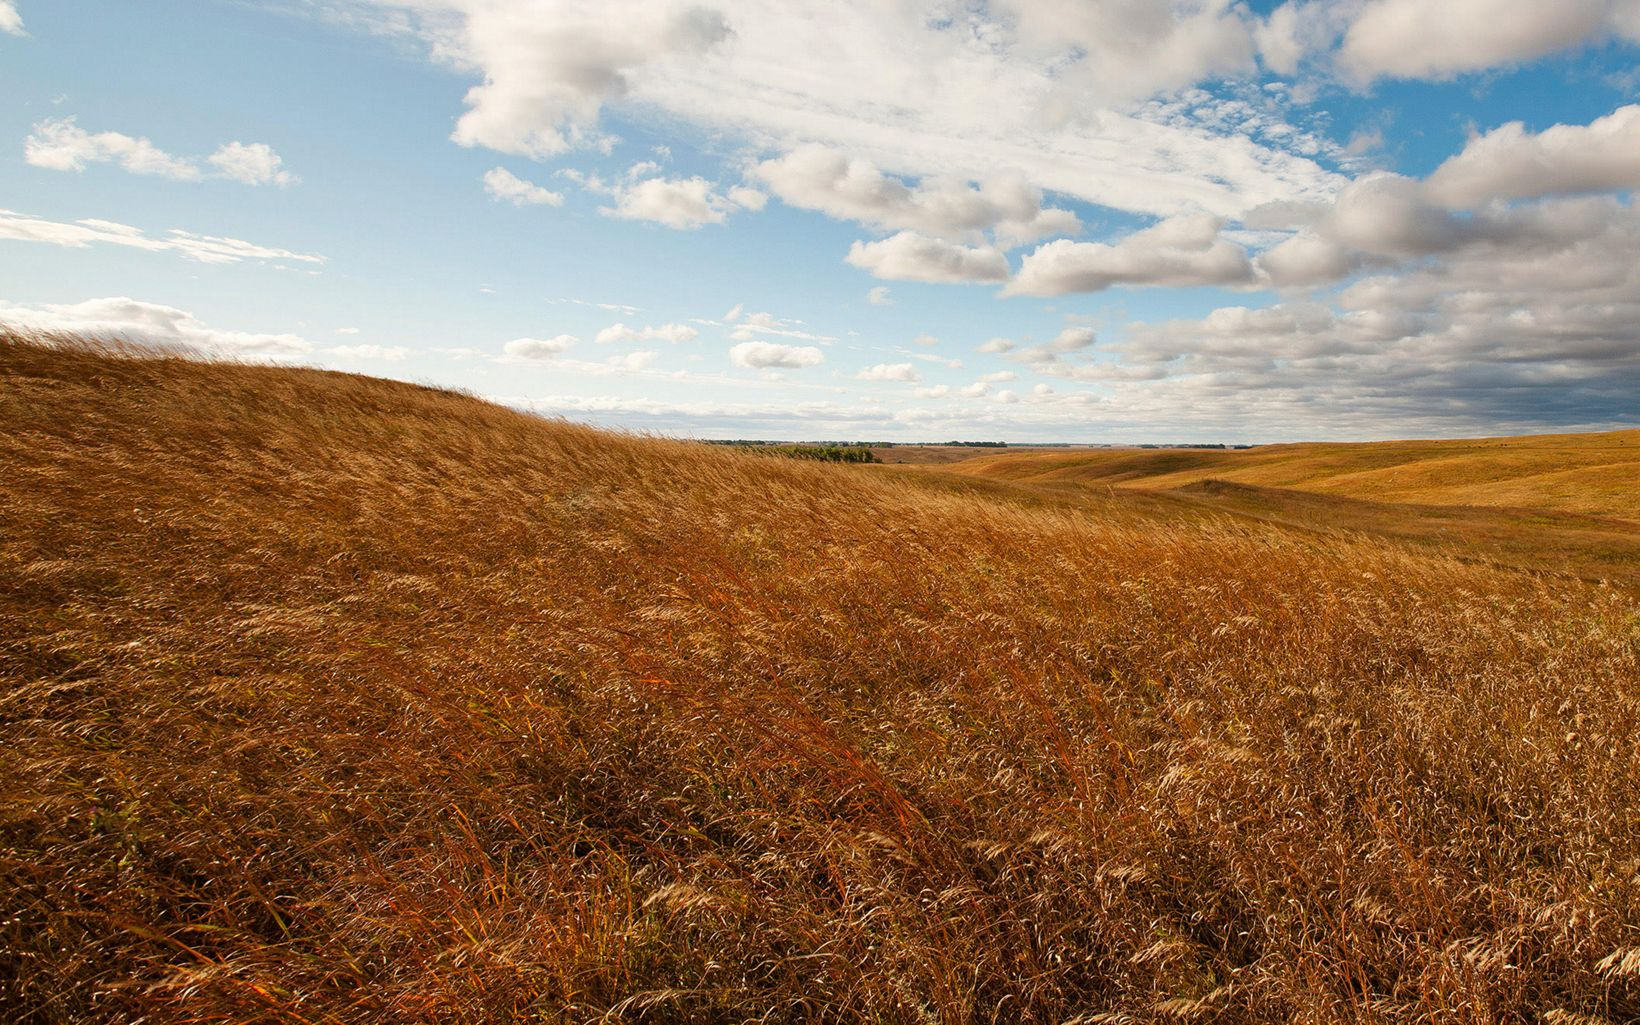 An open grassland pasture in fall with wind blowing in the grasses.